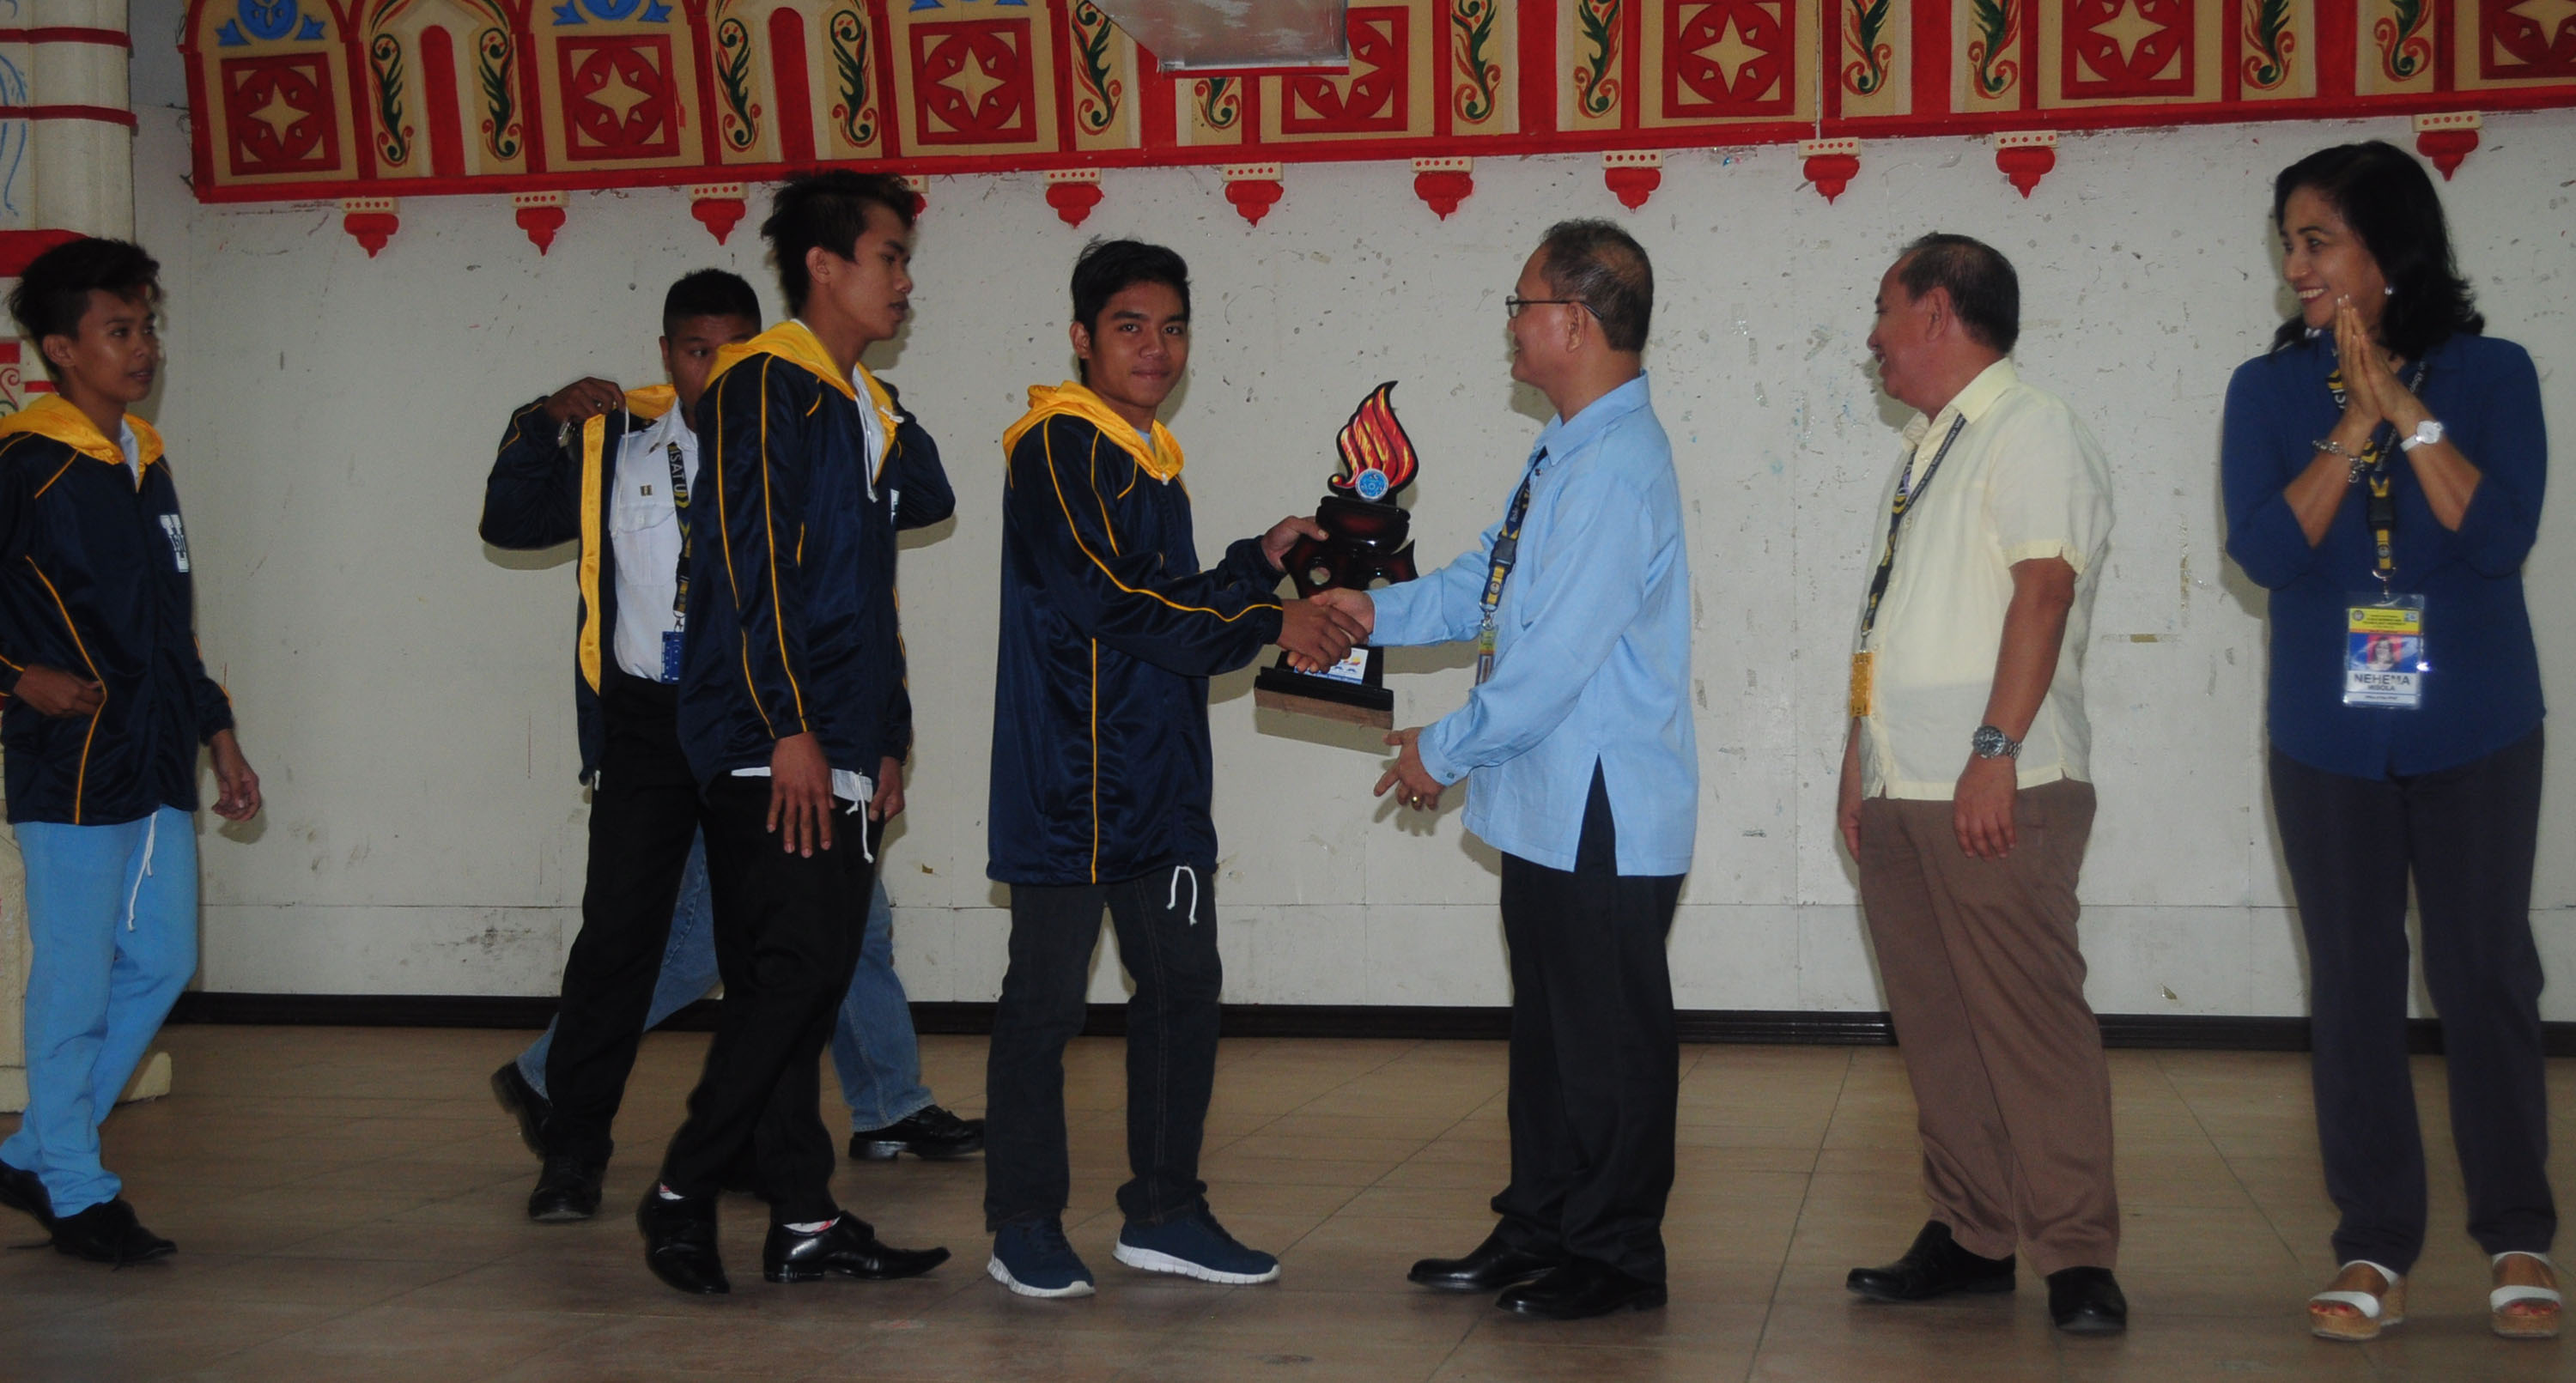 The ceremonial awarding of trophies for the winning athletes on January 9, 2017 at the Multi-purpose Educational Center.